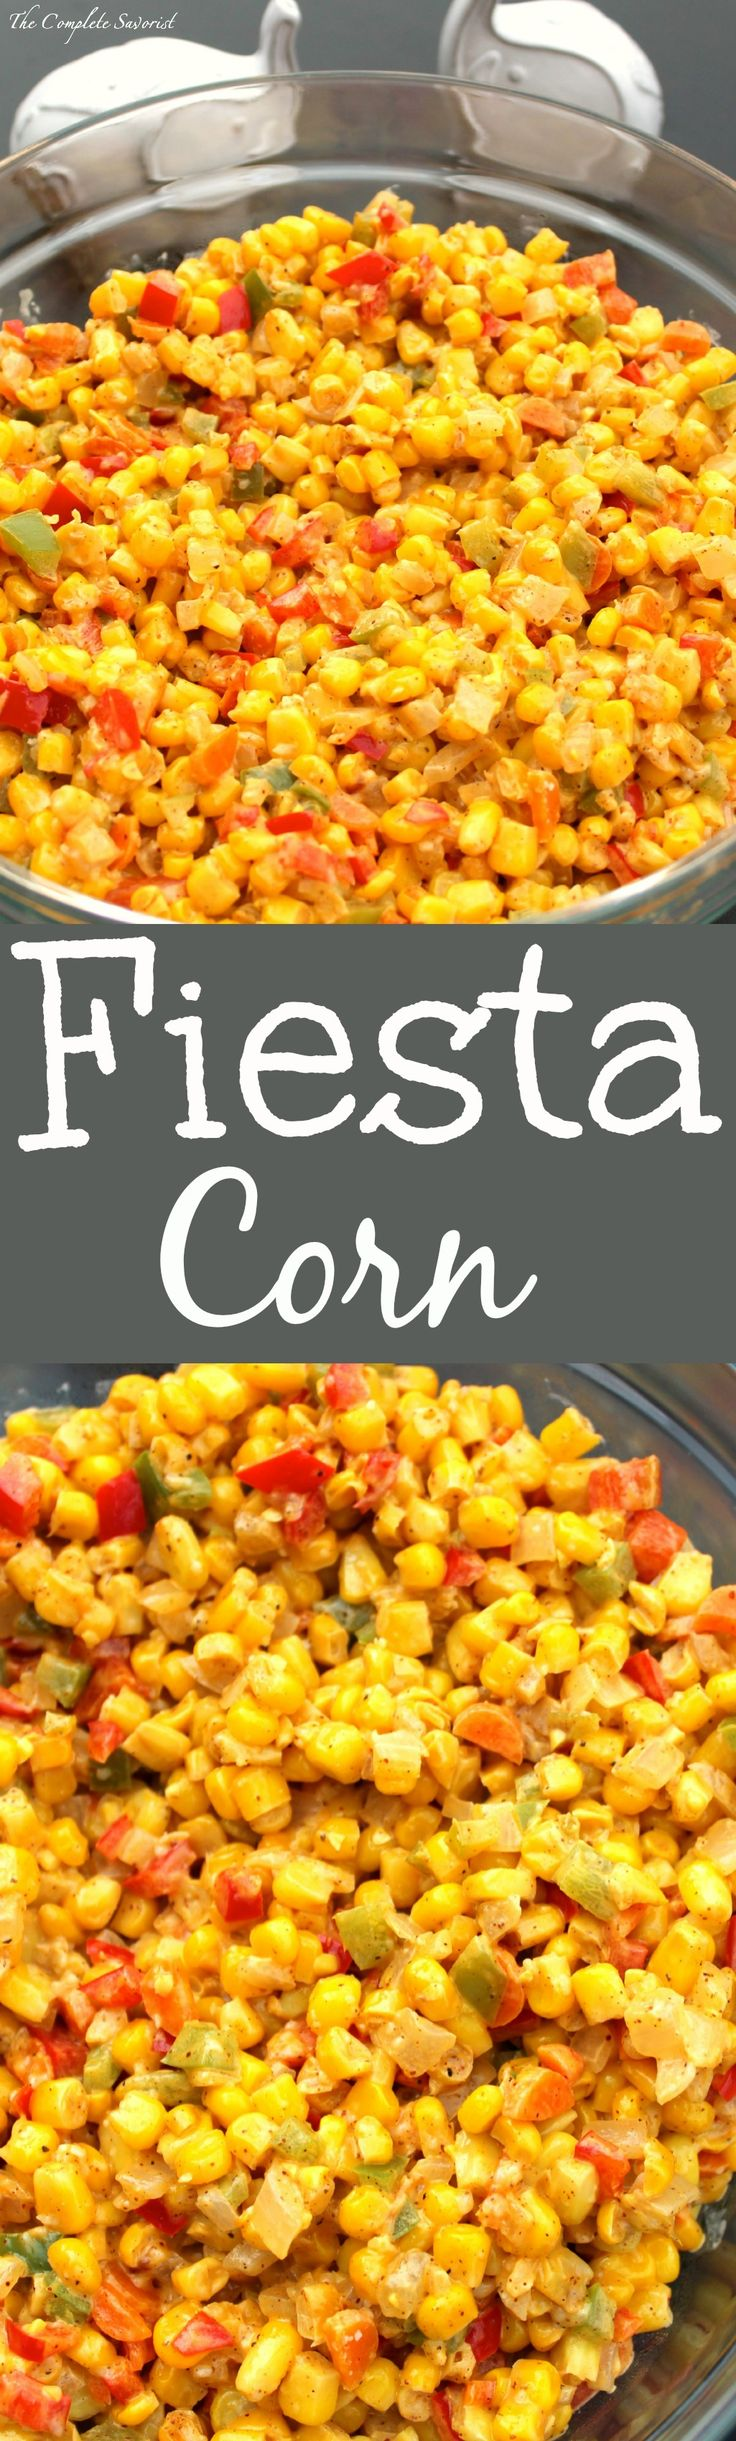 Fiesta Corn ~ Corn, bell peppers, carrots, and onions mixed with mayo, chili powder, and parmesan for a side dish in the style of Mexican street corn. ~The Complete Savorist